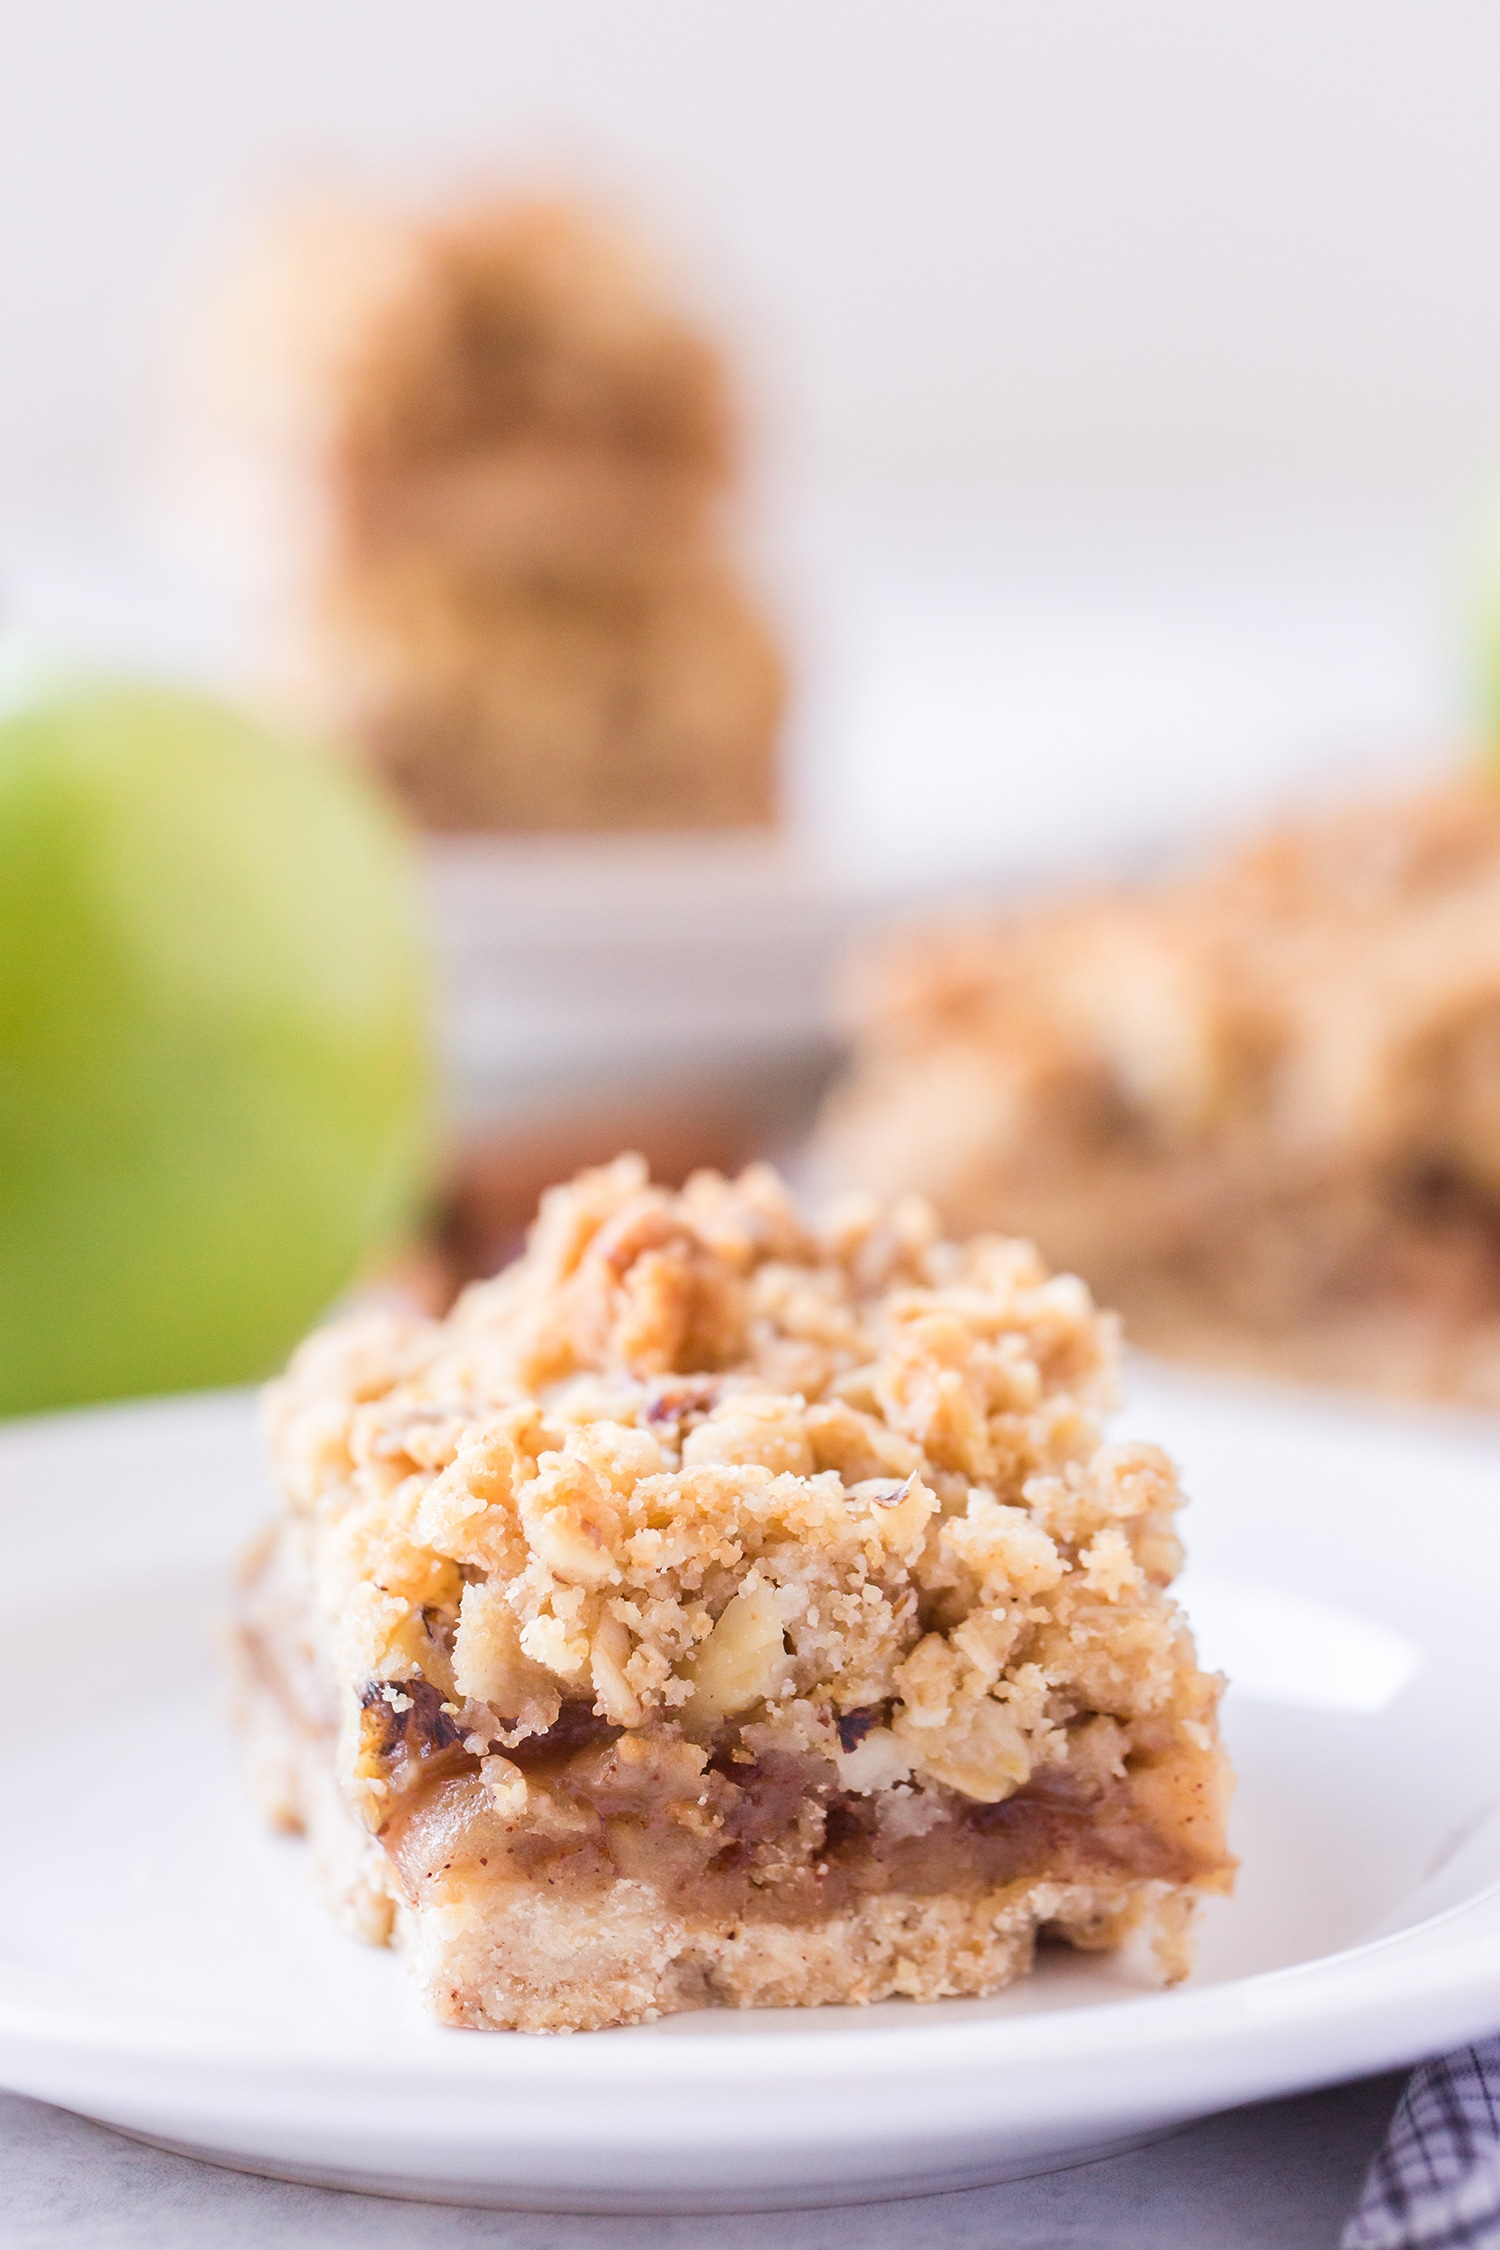 Apple pie bar on white plate with apples and more bars in the background